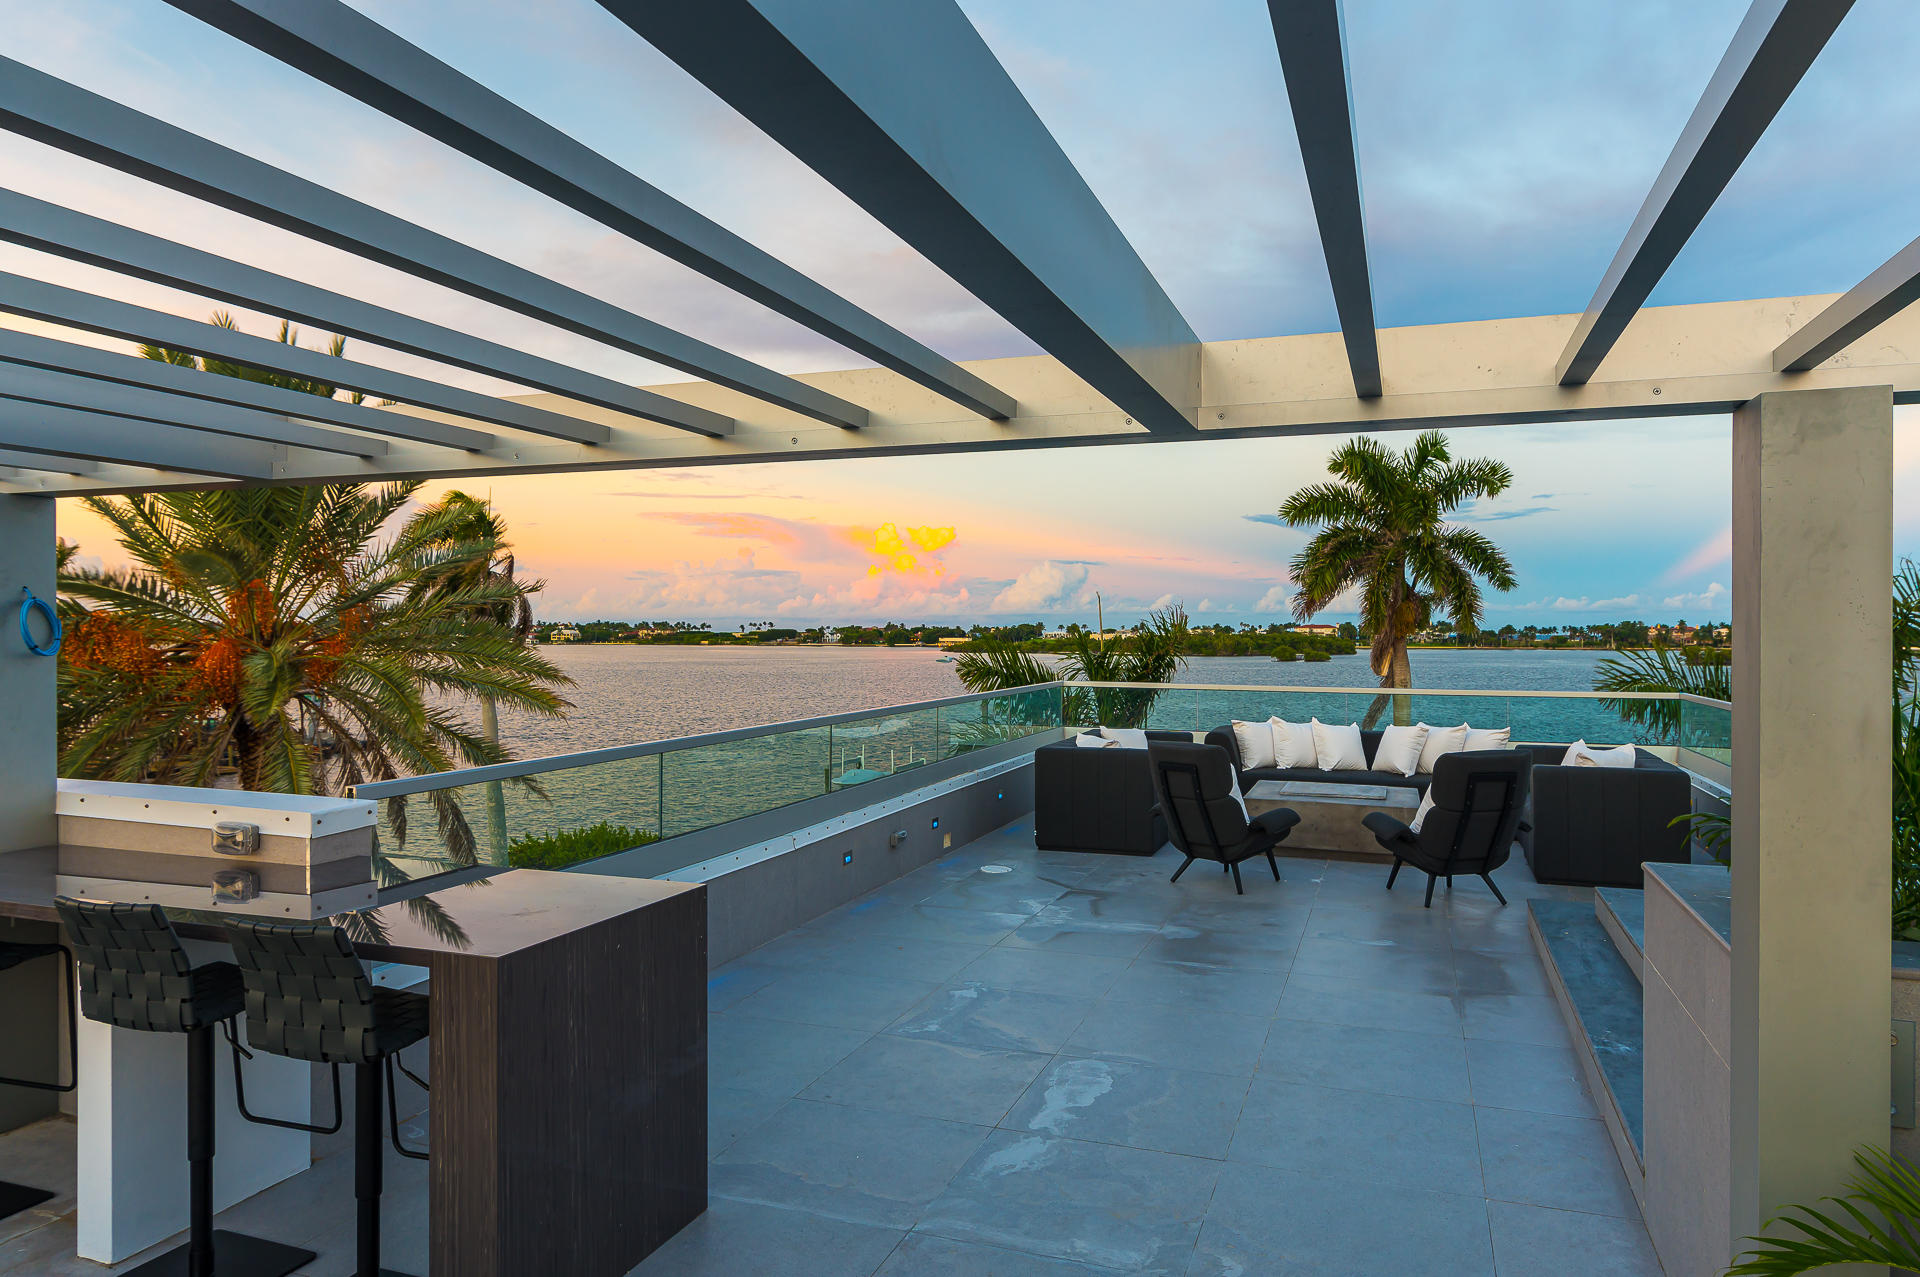 Roof Top kitchen and Pergola